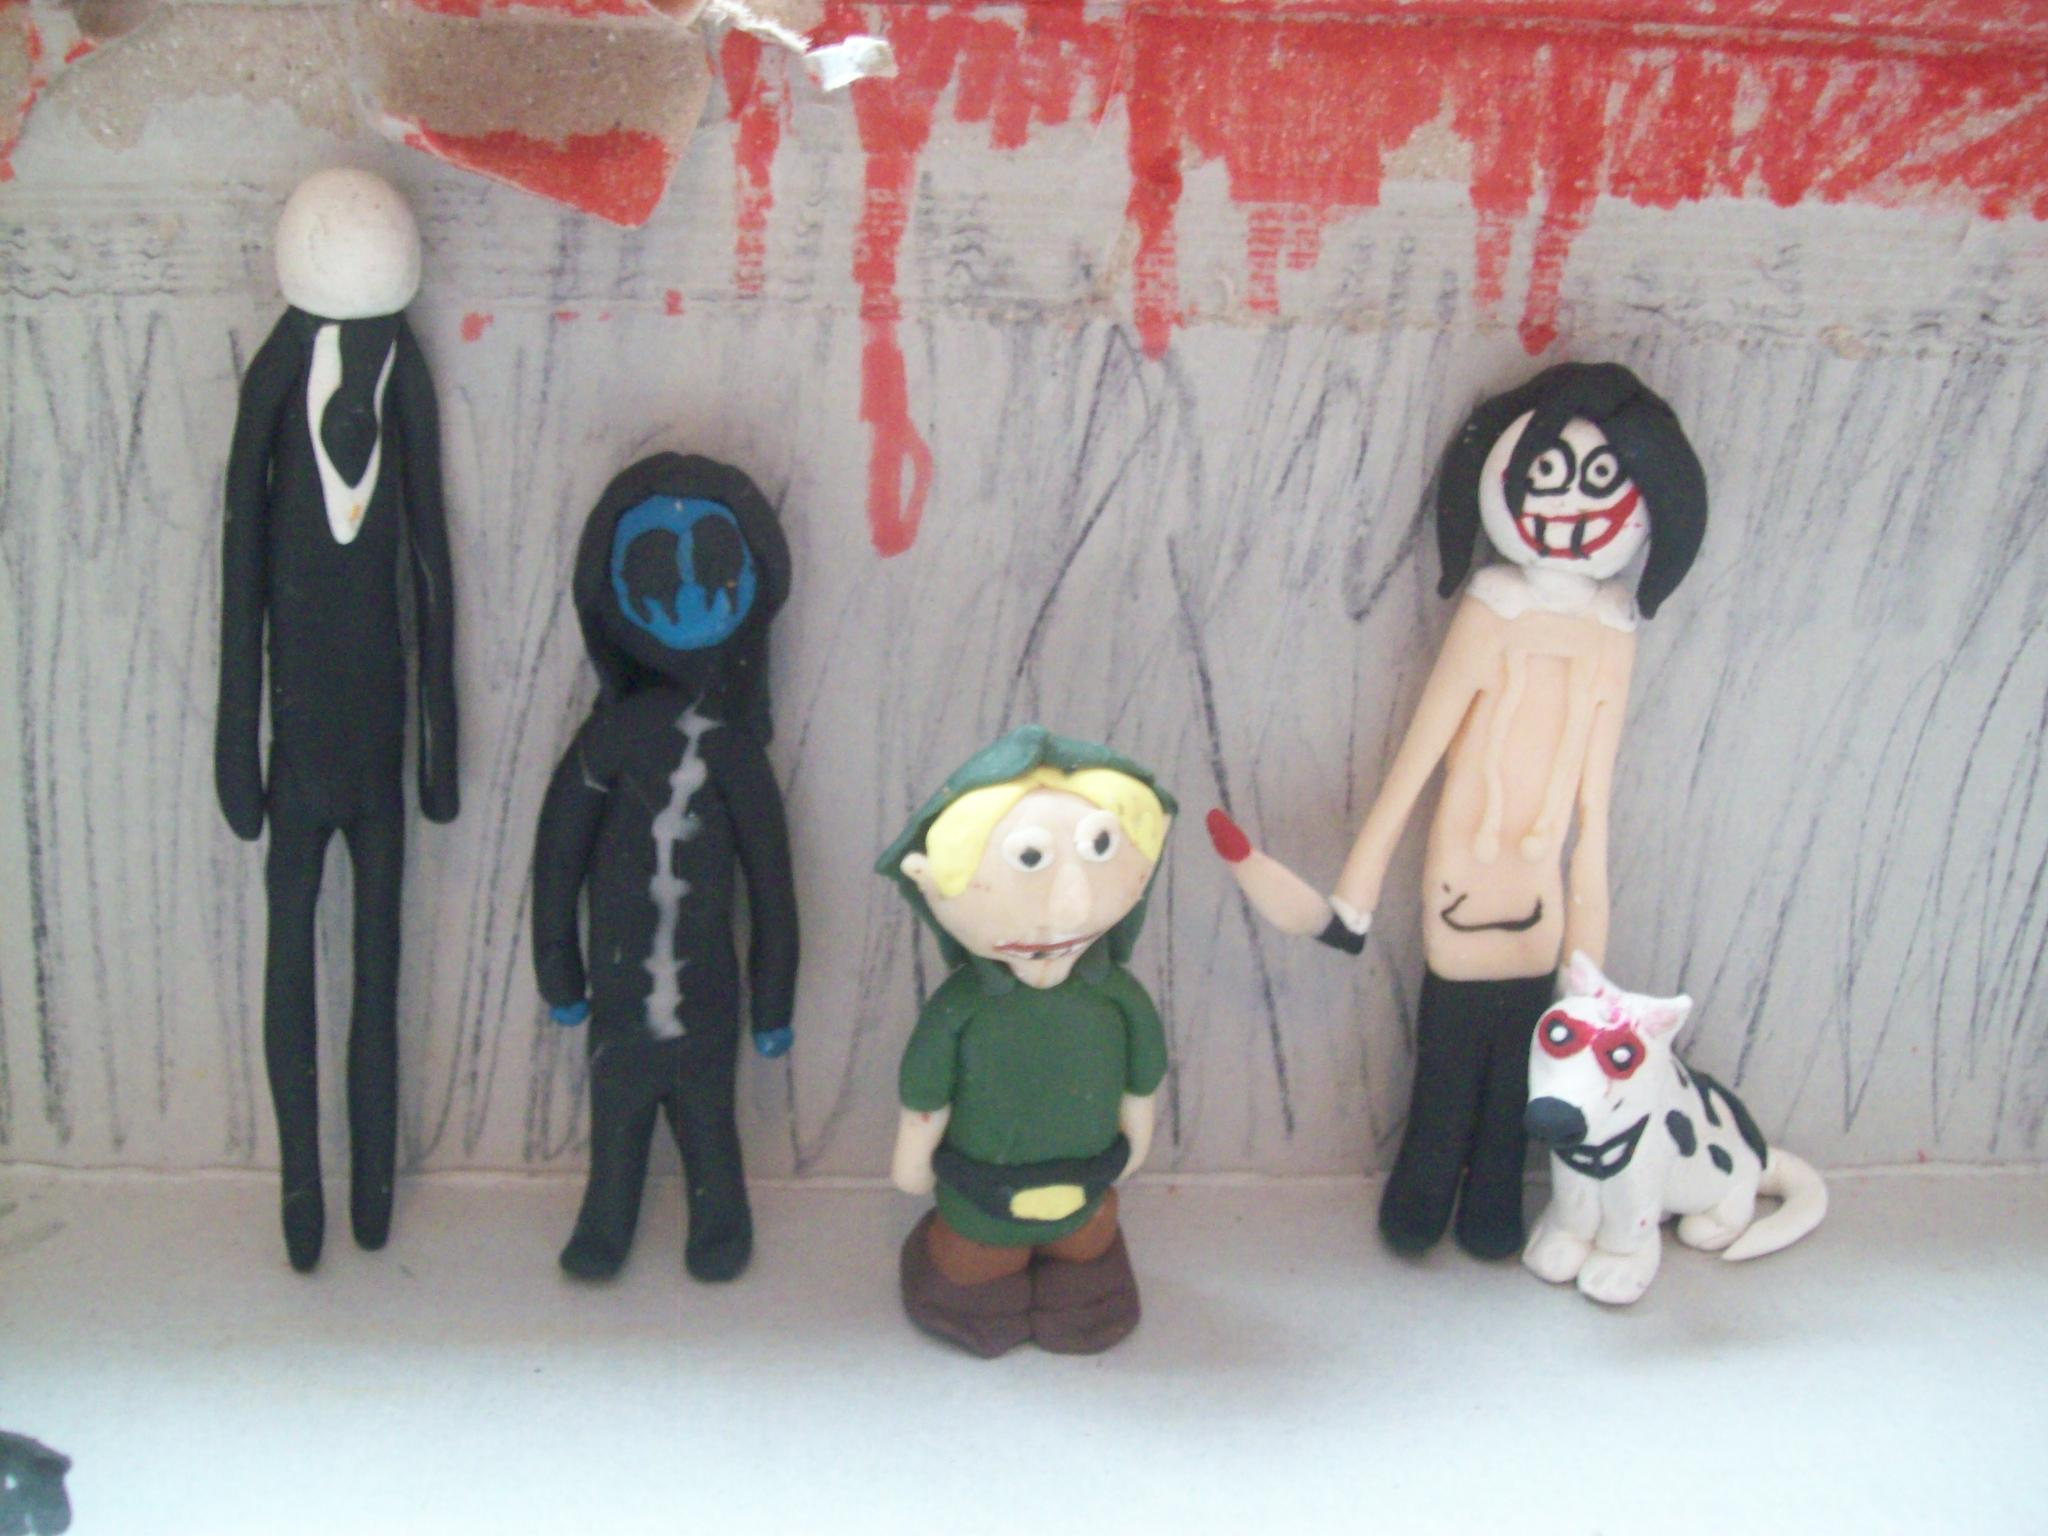 !!@Bing00's Clay Creepypastas!!